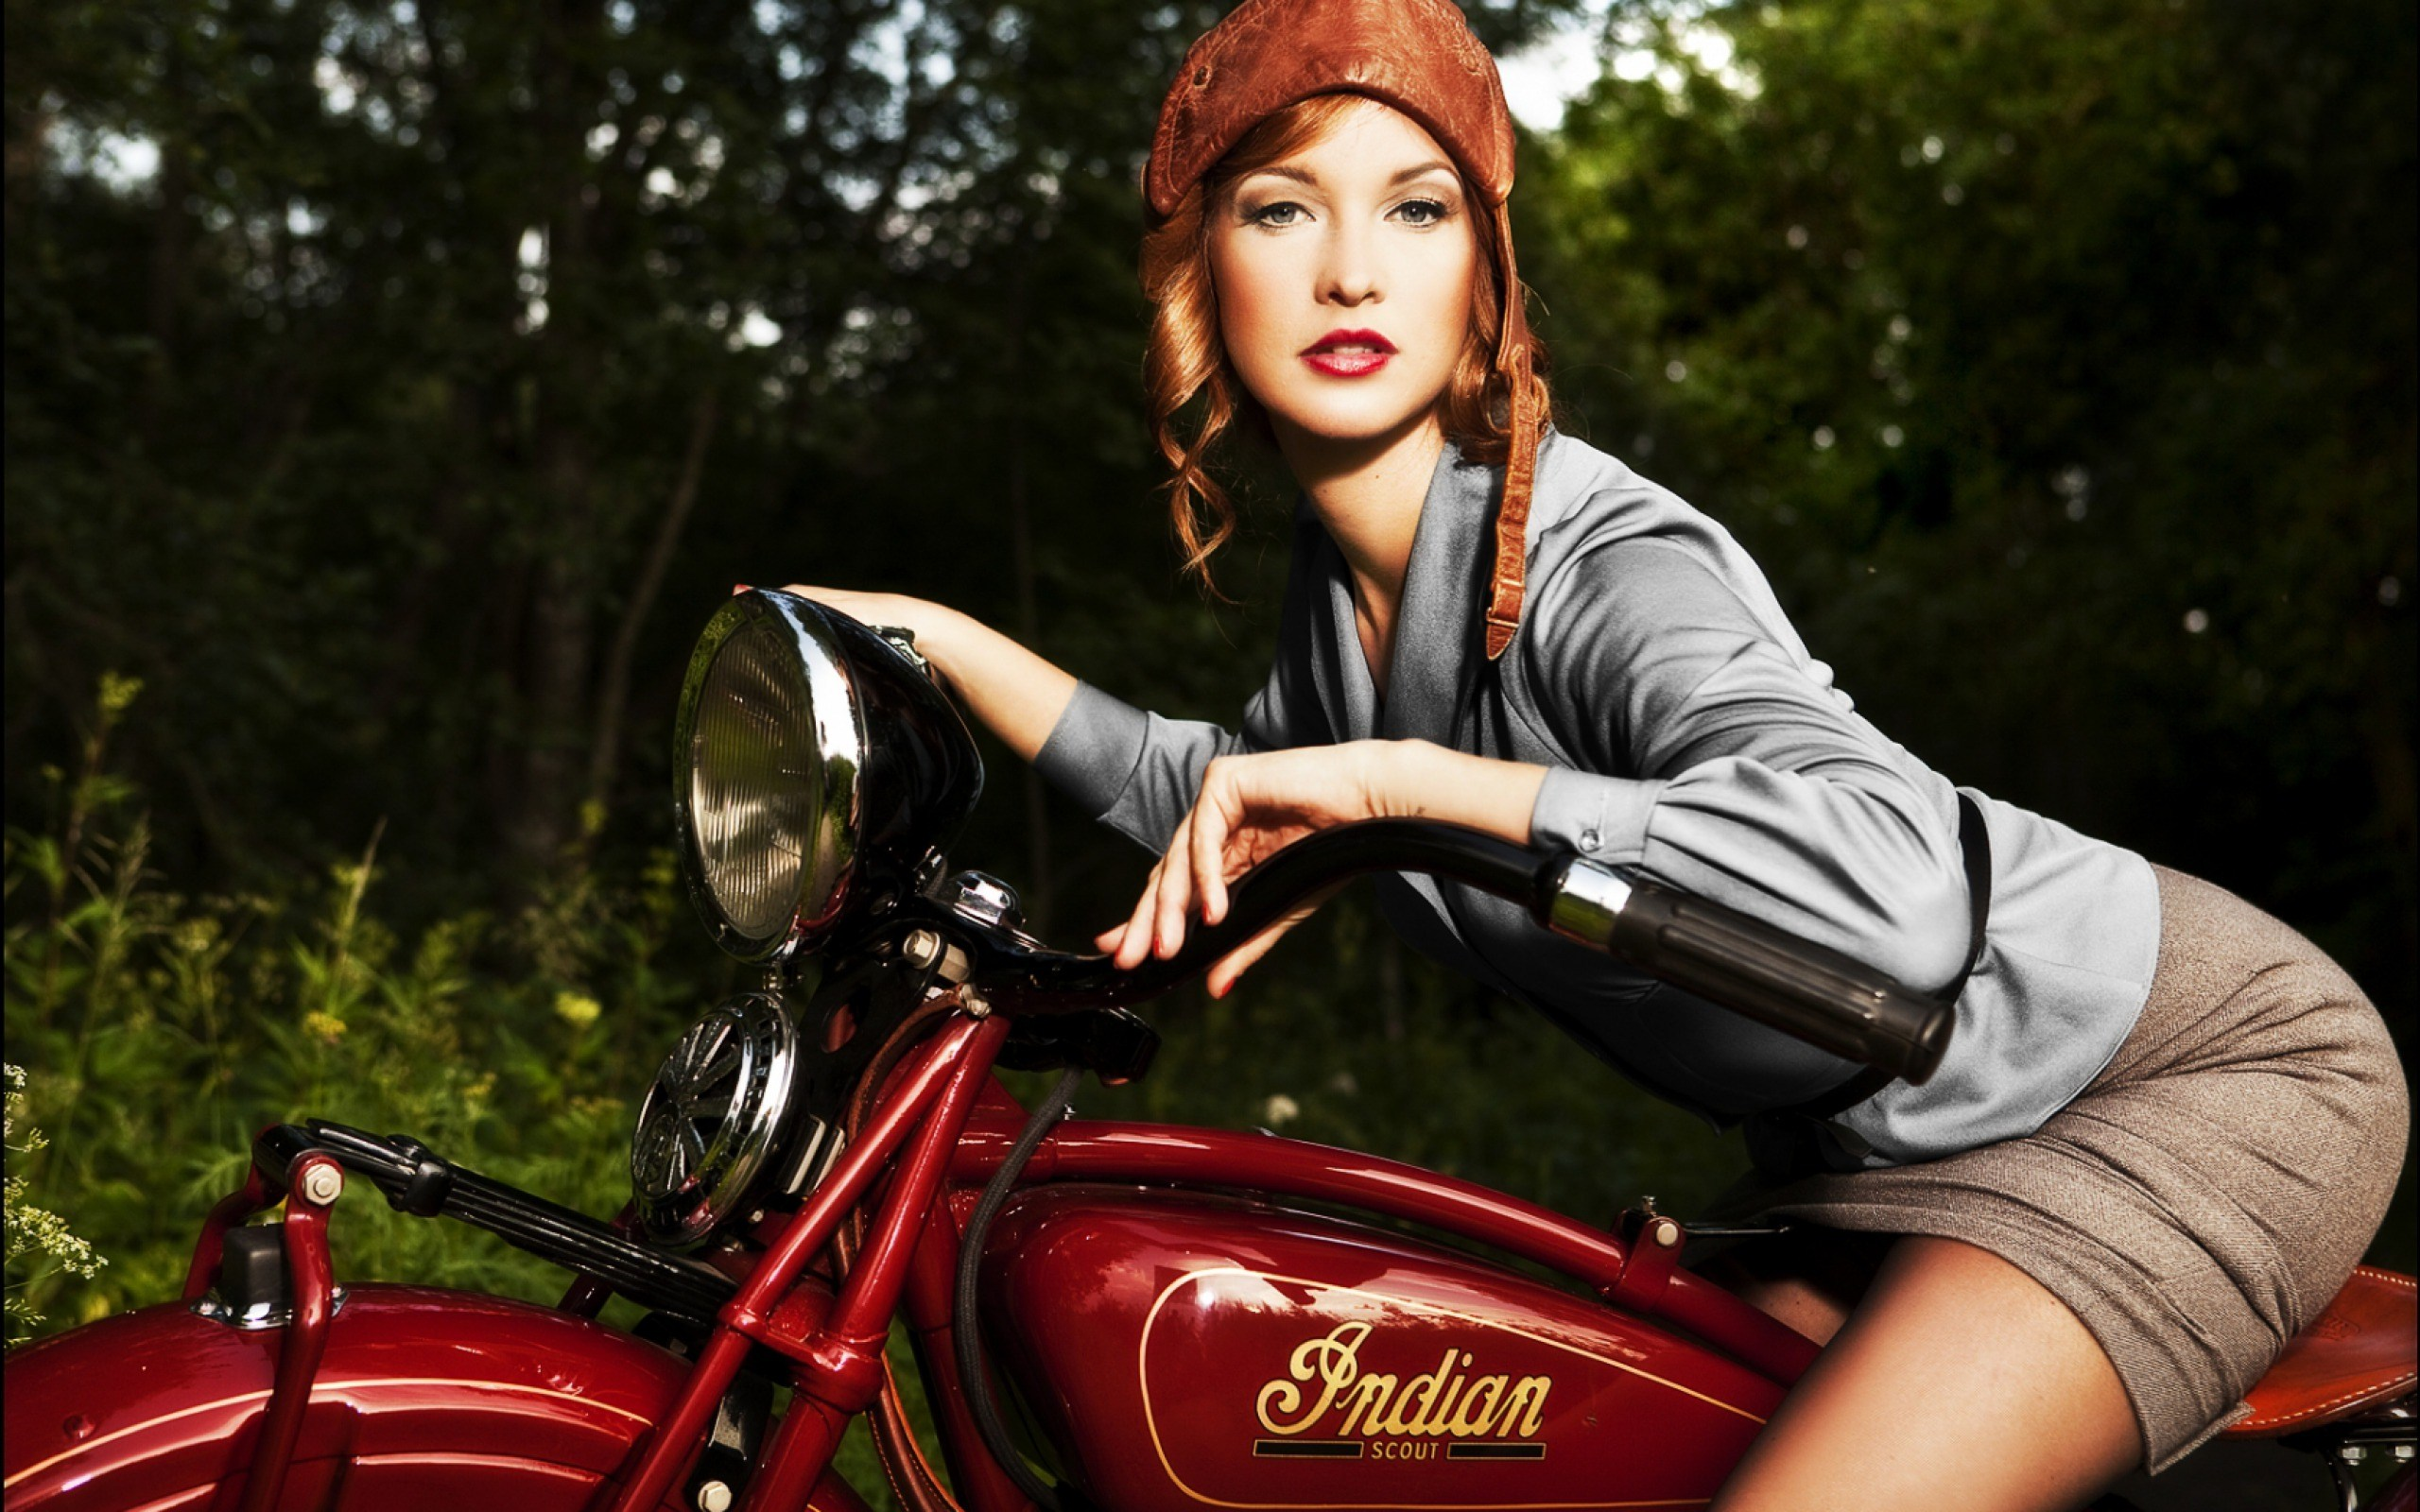 Redhead Girl Vintage Indian Motorcycle Wide Redhead Girl Vintage Wallpaper